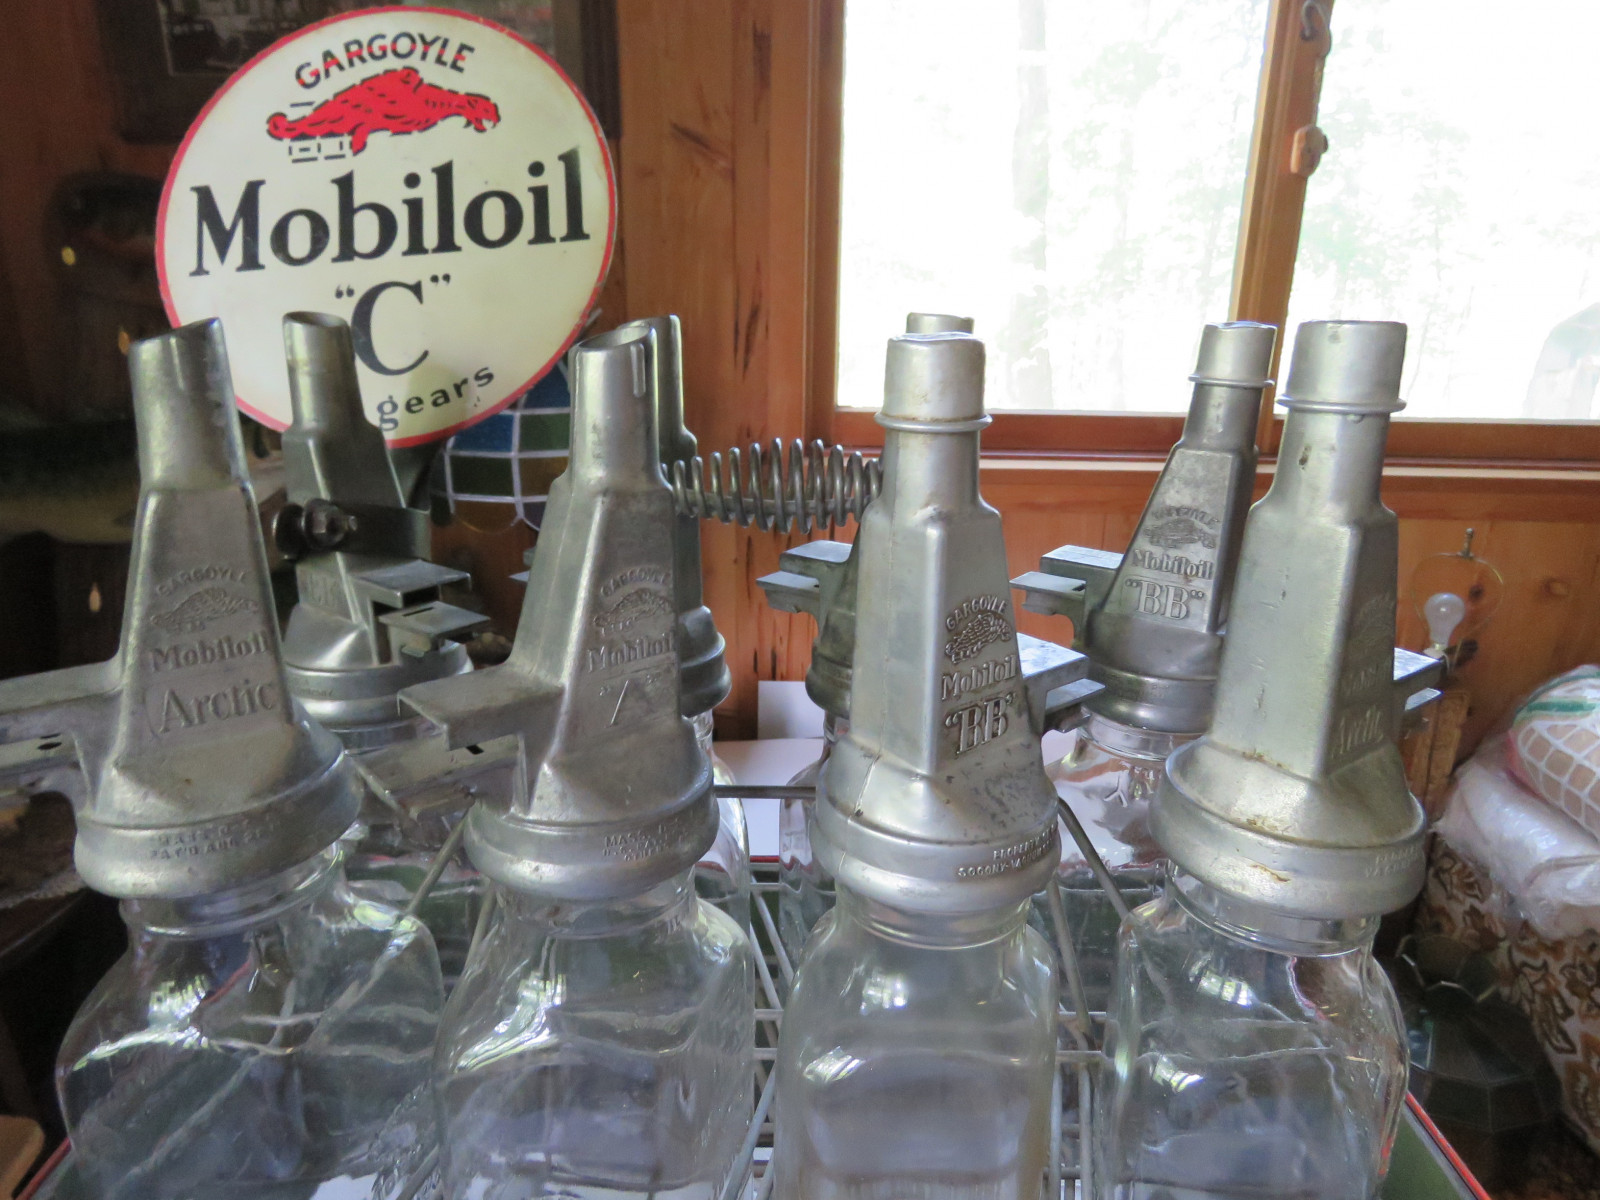 Rare Glass Mobil Oil Bottles in Rack with MobilOil Advertising - Image 7